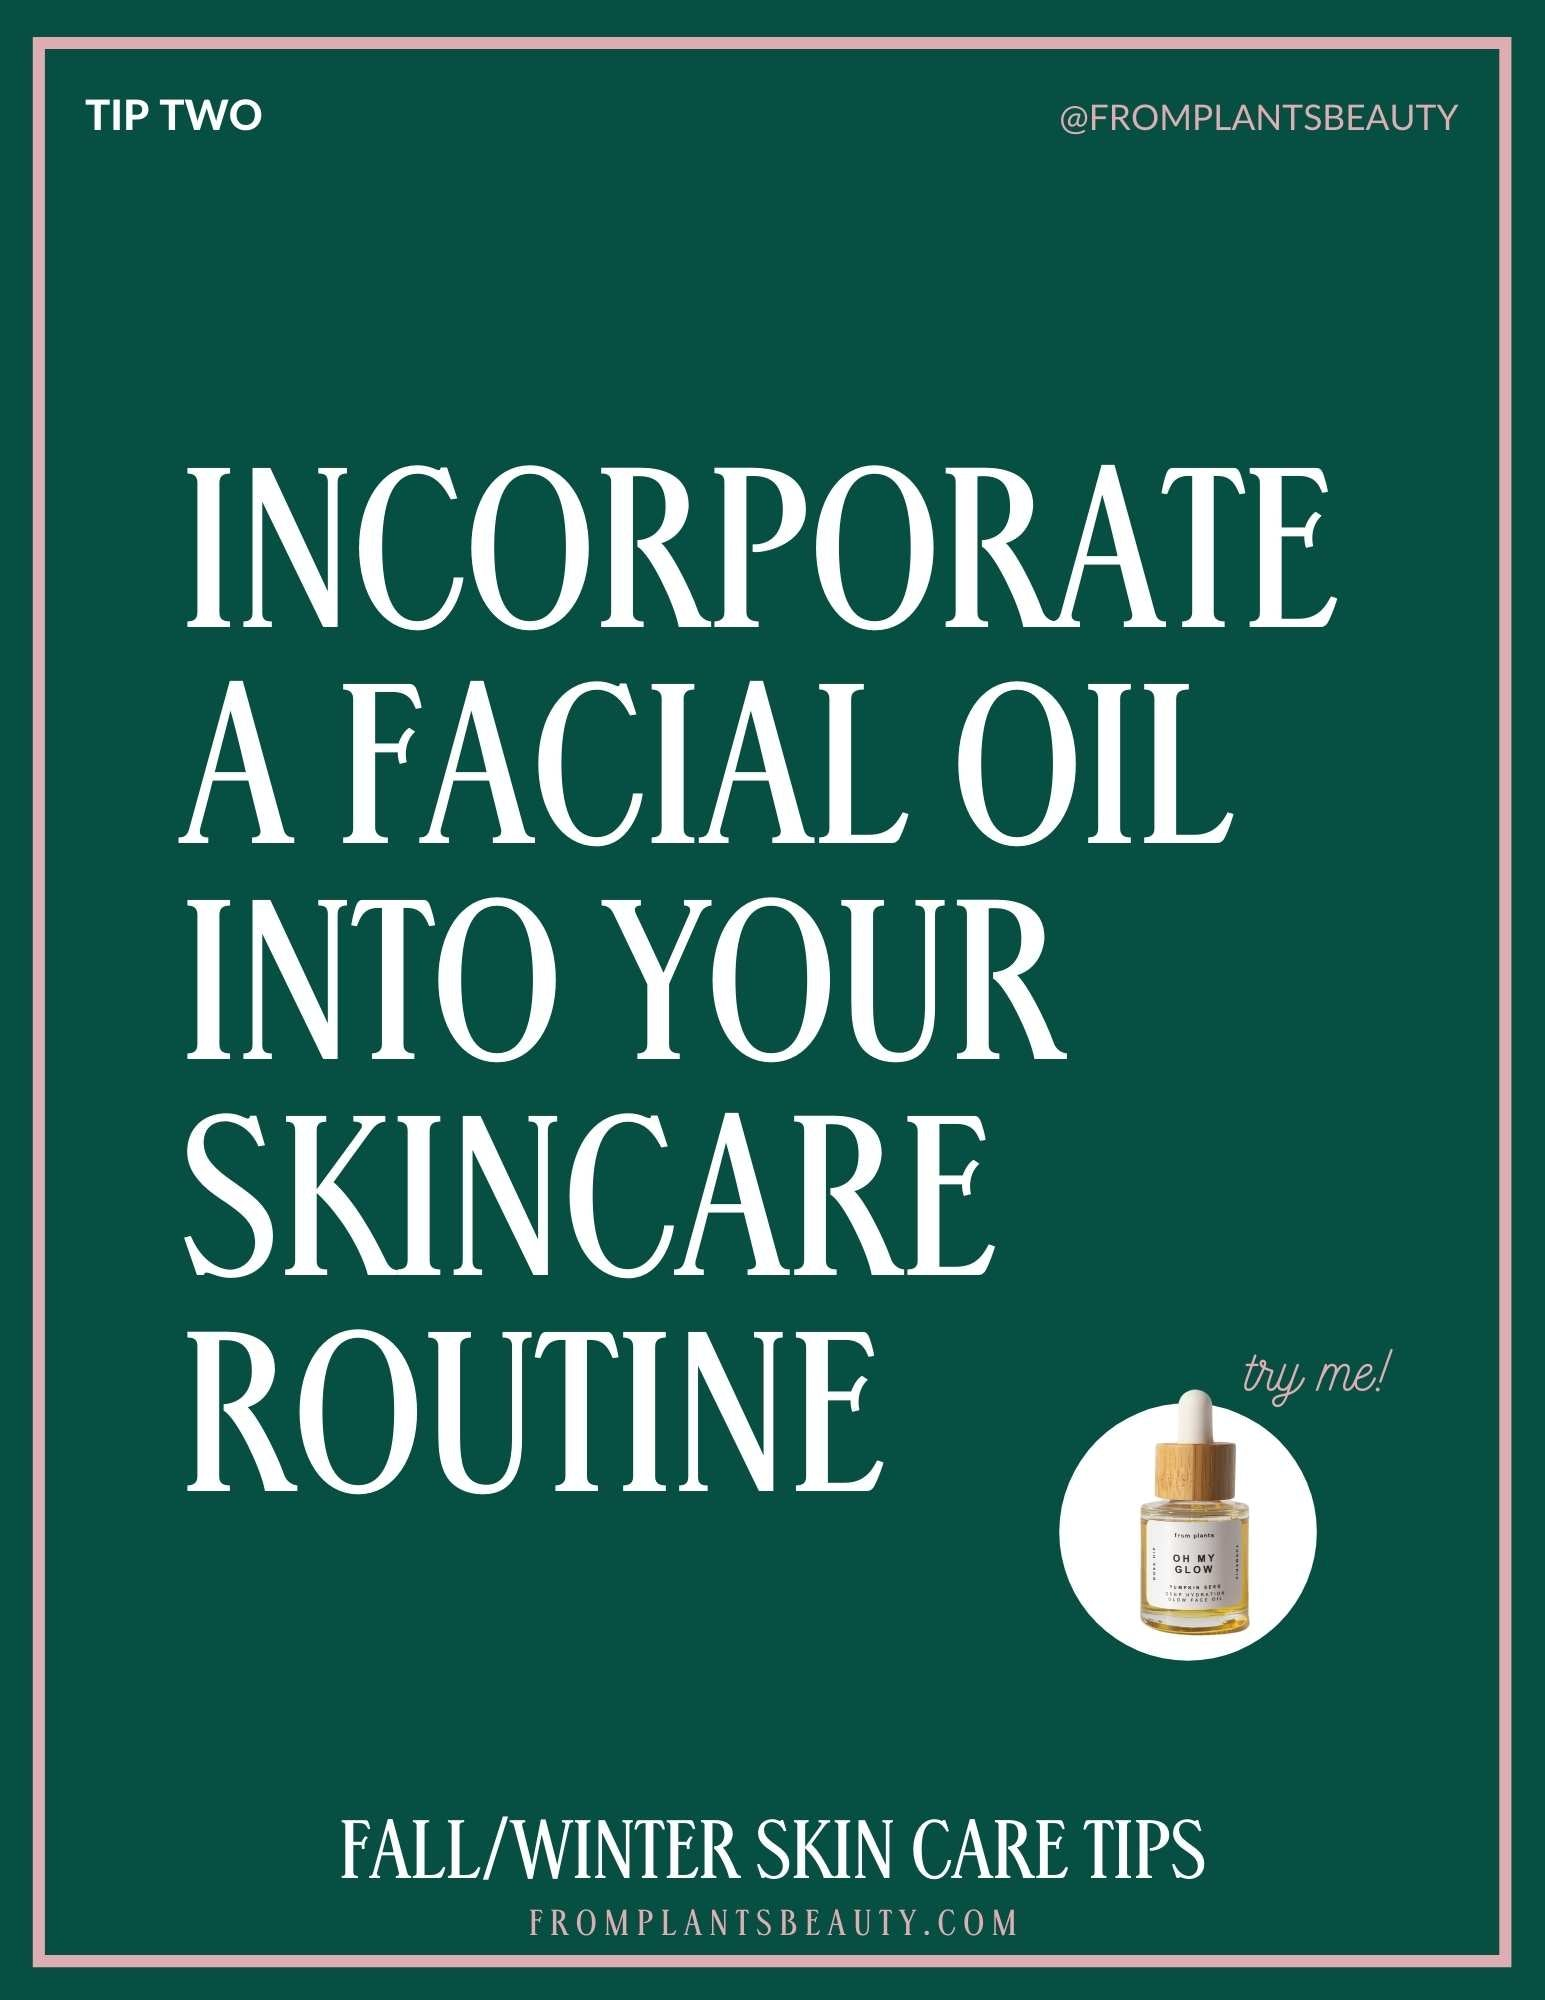 Ten Fall/Winter Skin Care Tips   From Plants Beauty   Best Clean skincare products